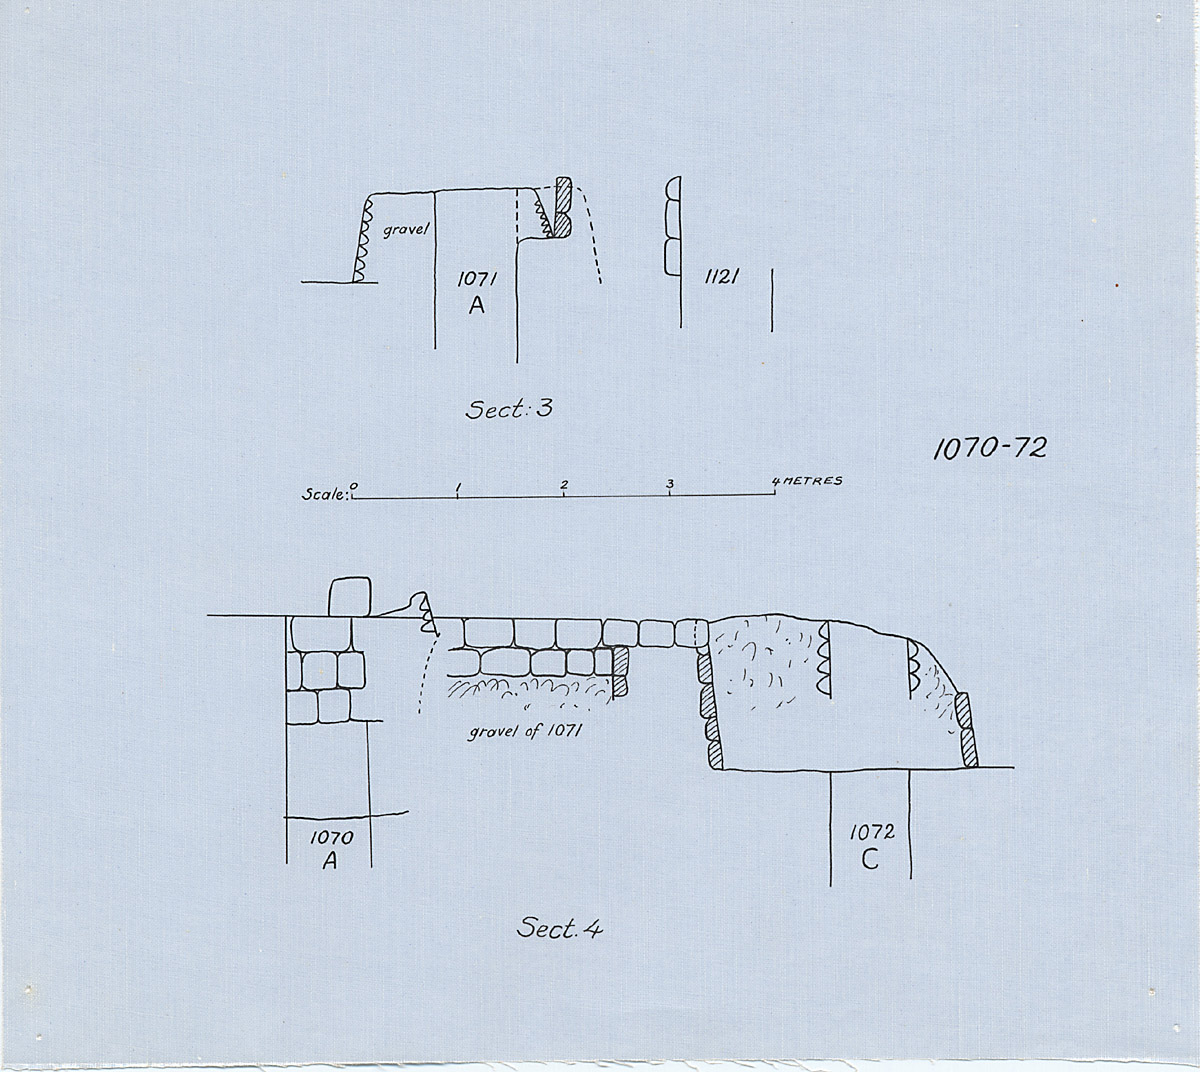 Maps and plans: Section of G 1070, G 1071, G 1072, with position of G 1121